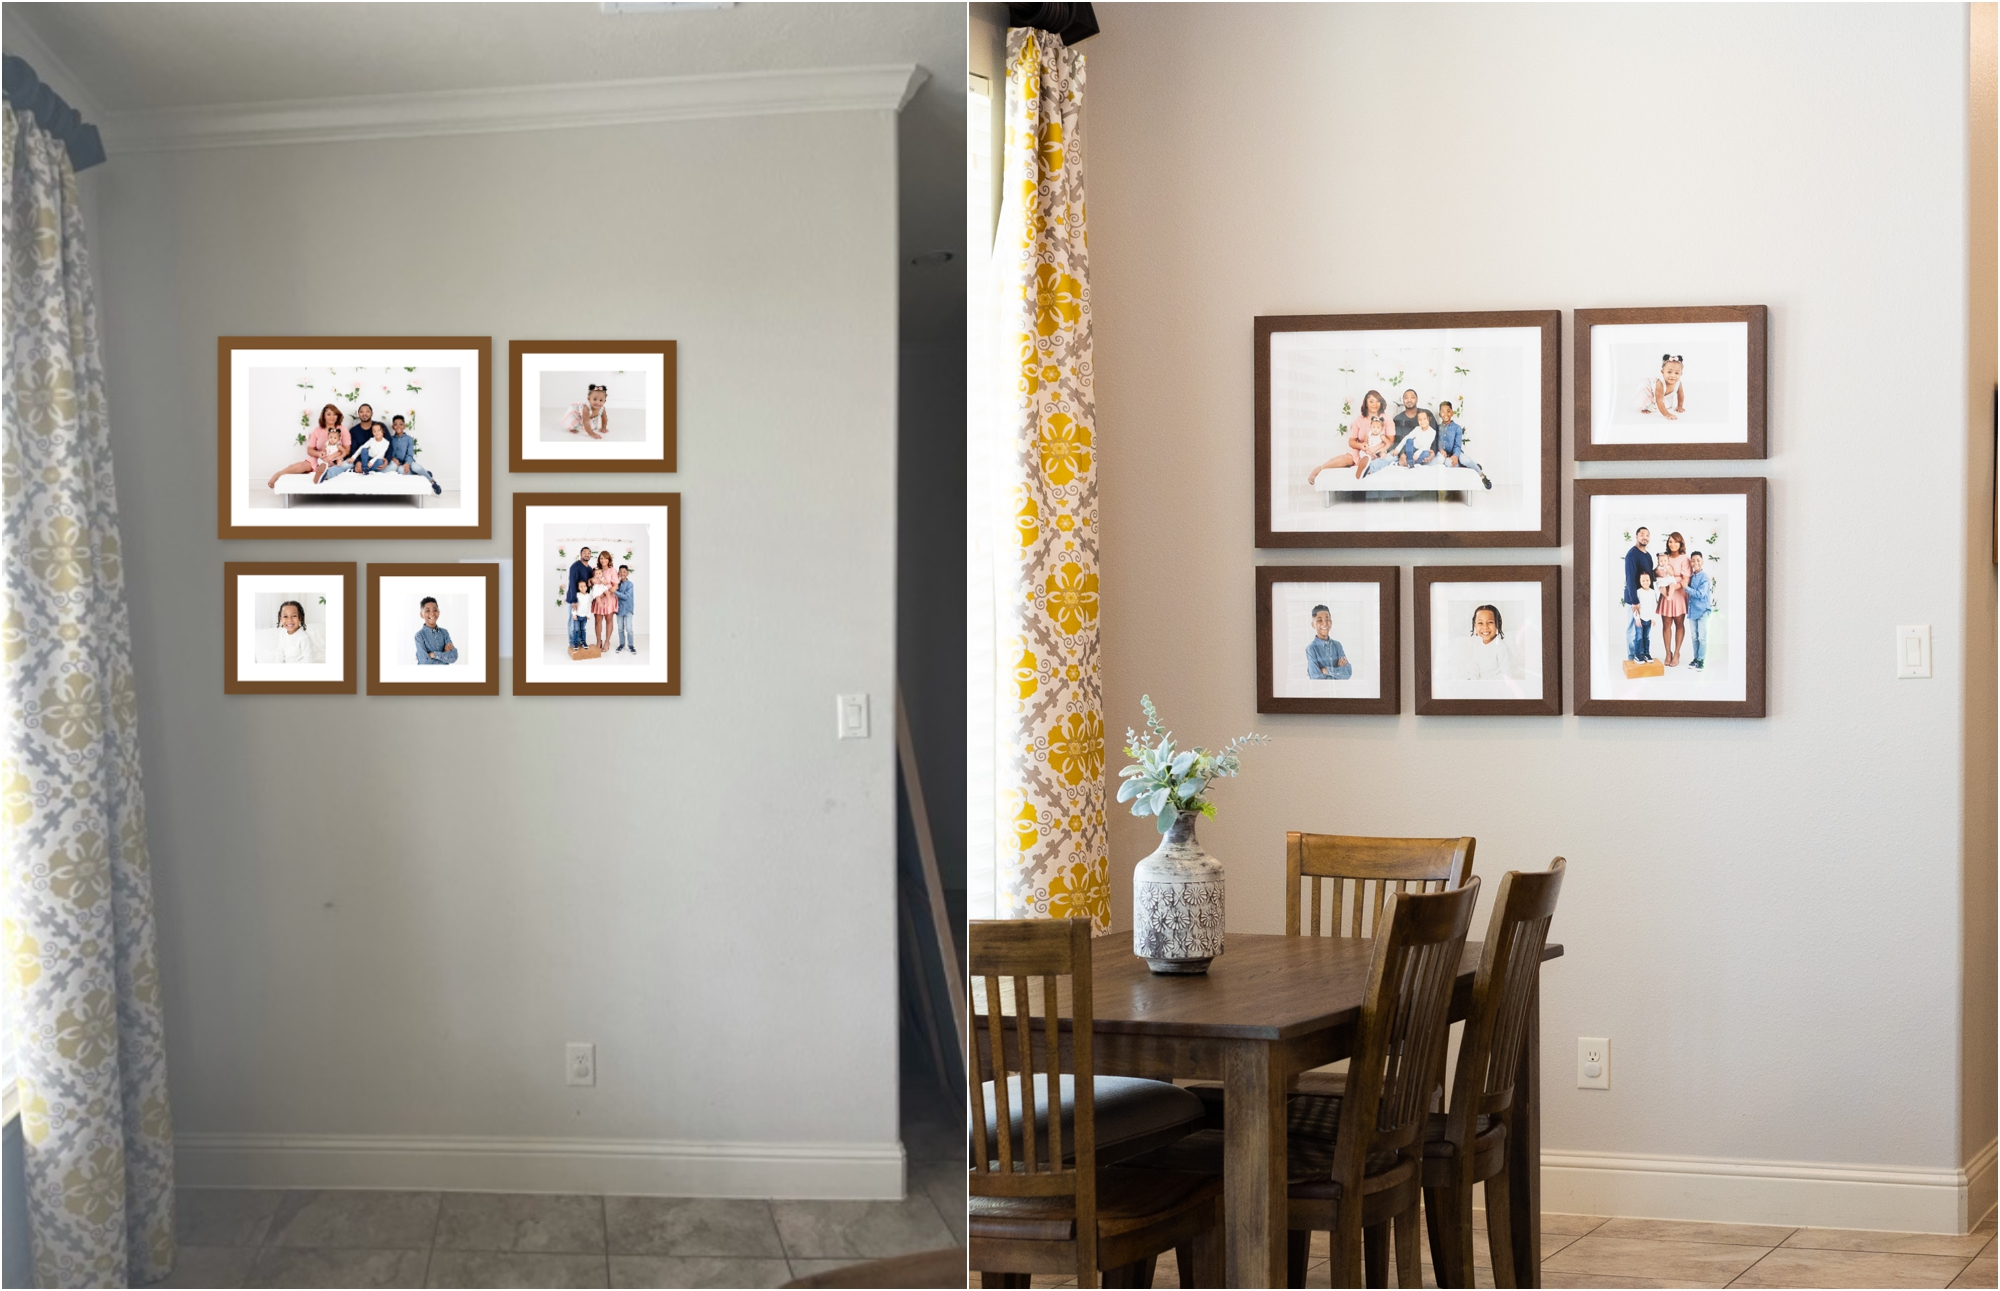 Before and after digital wall art design by Lifetime of Clicks Photography.